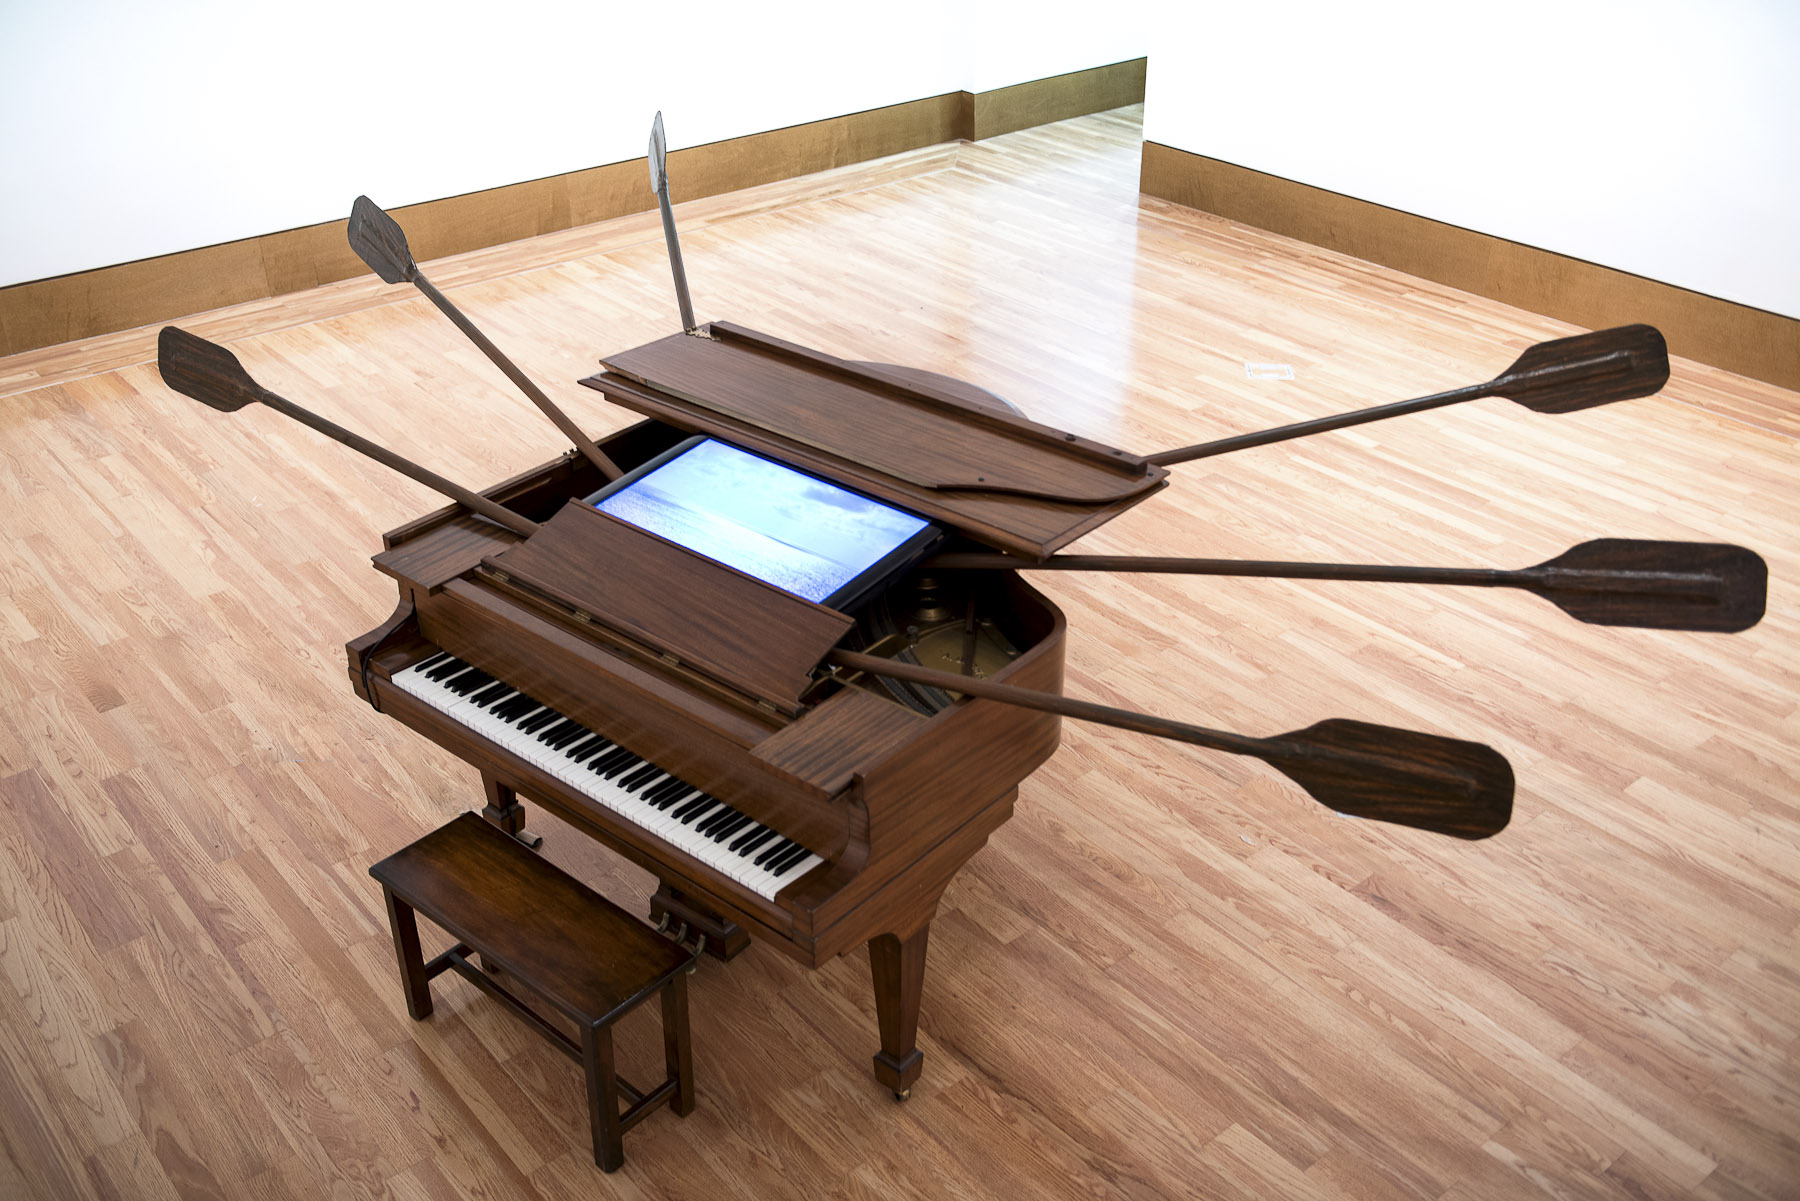 Escape. 2013. Installation with piano wooden, oars and video monitor. Dimensions variable. The Paricia & Philip Frost Museum. Miami, Fl.